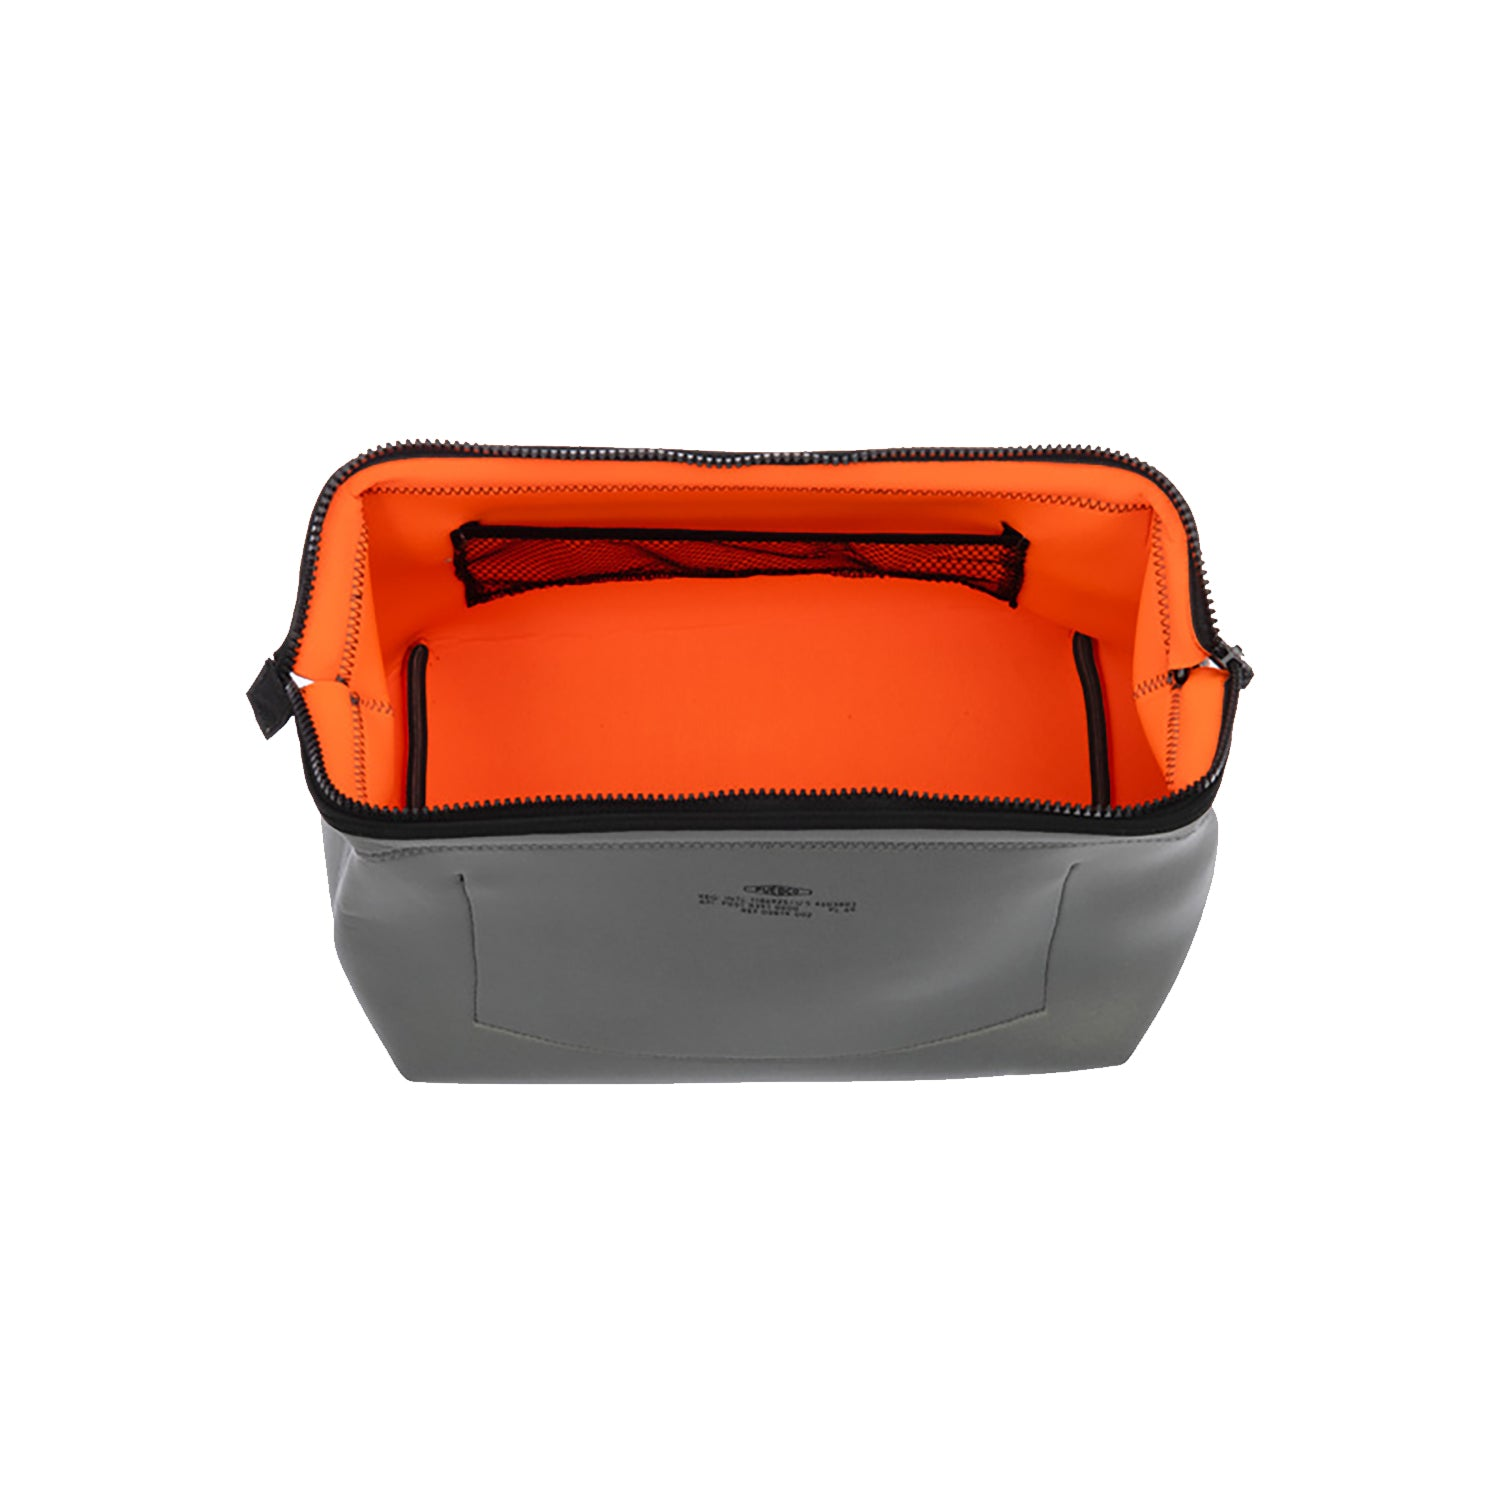 Wired Pouch  - Light Gray & Orange